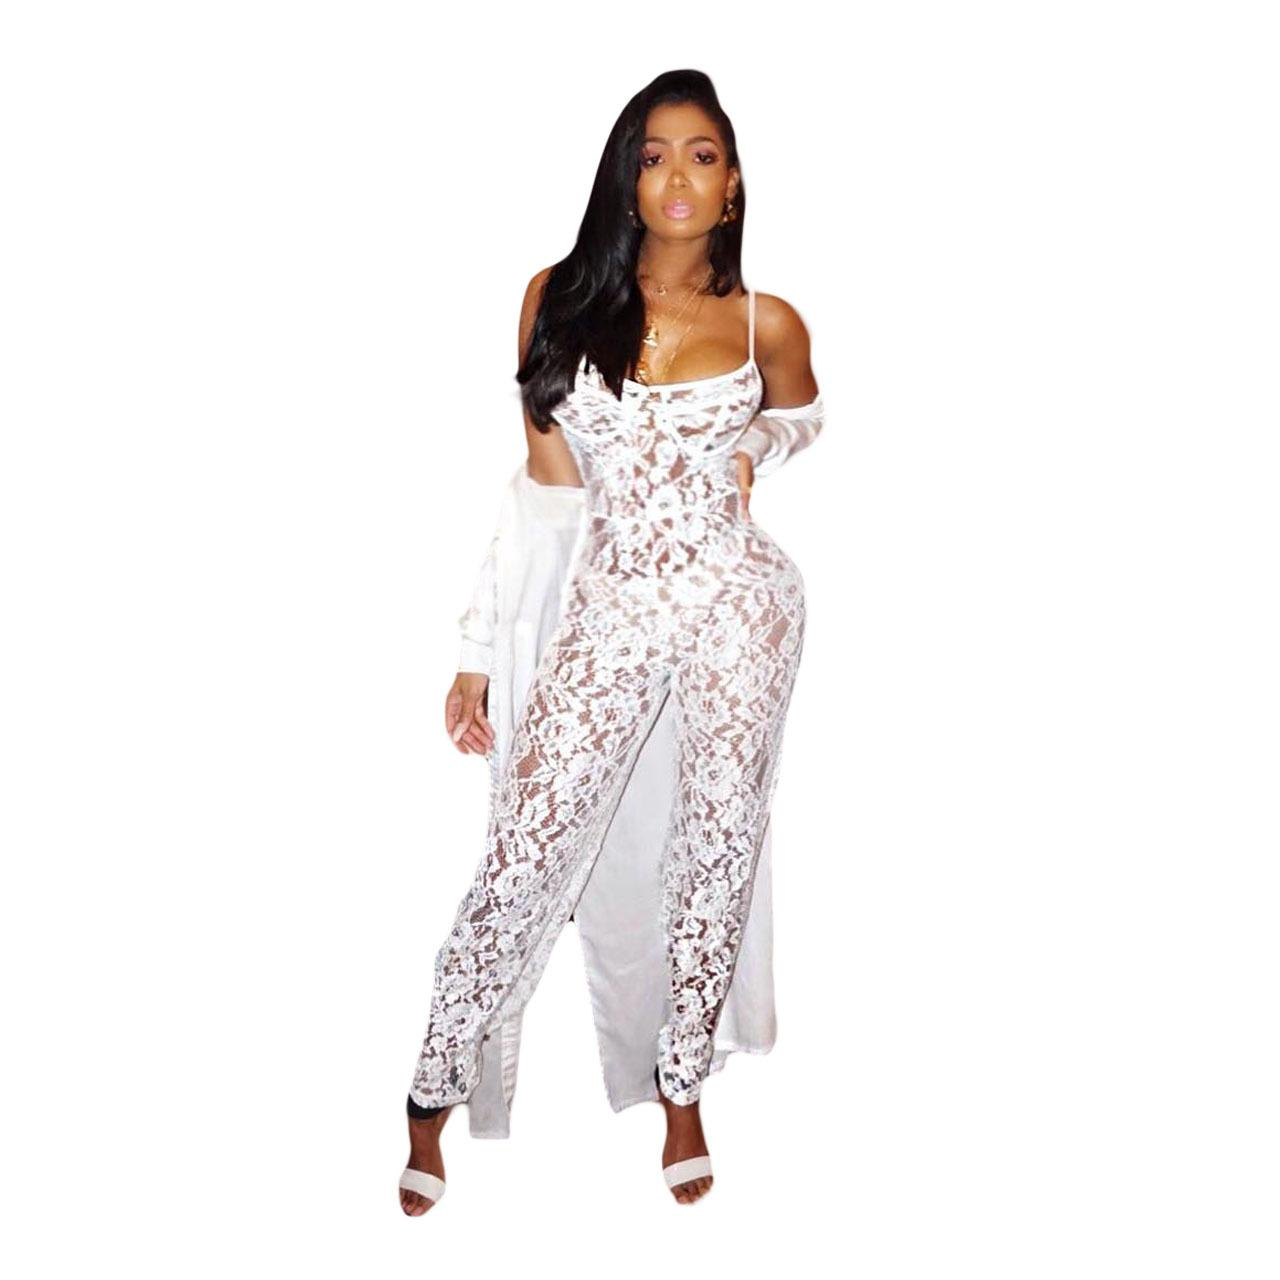 aea2fcf69b4 2019 Summer White Lace Jumpsuit Women Strap See Through Bodysuit Sheer Sexy  Romper Bodycon Rompers Womens Jumpsuit Club Party Outfits From Bailanh